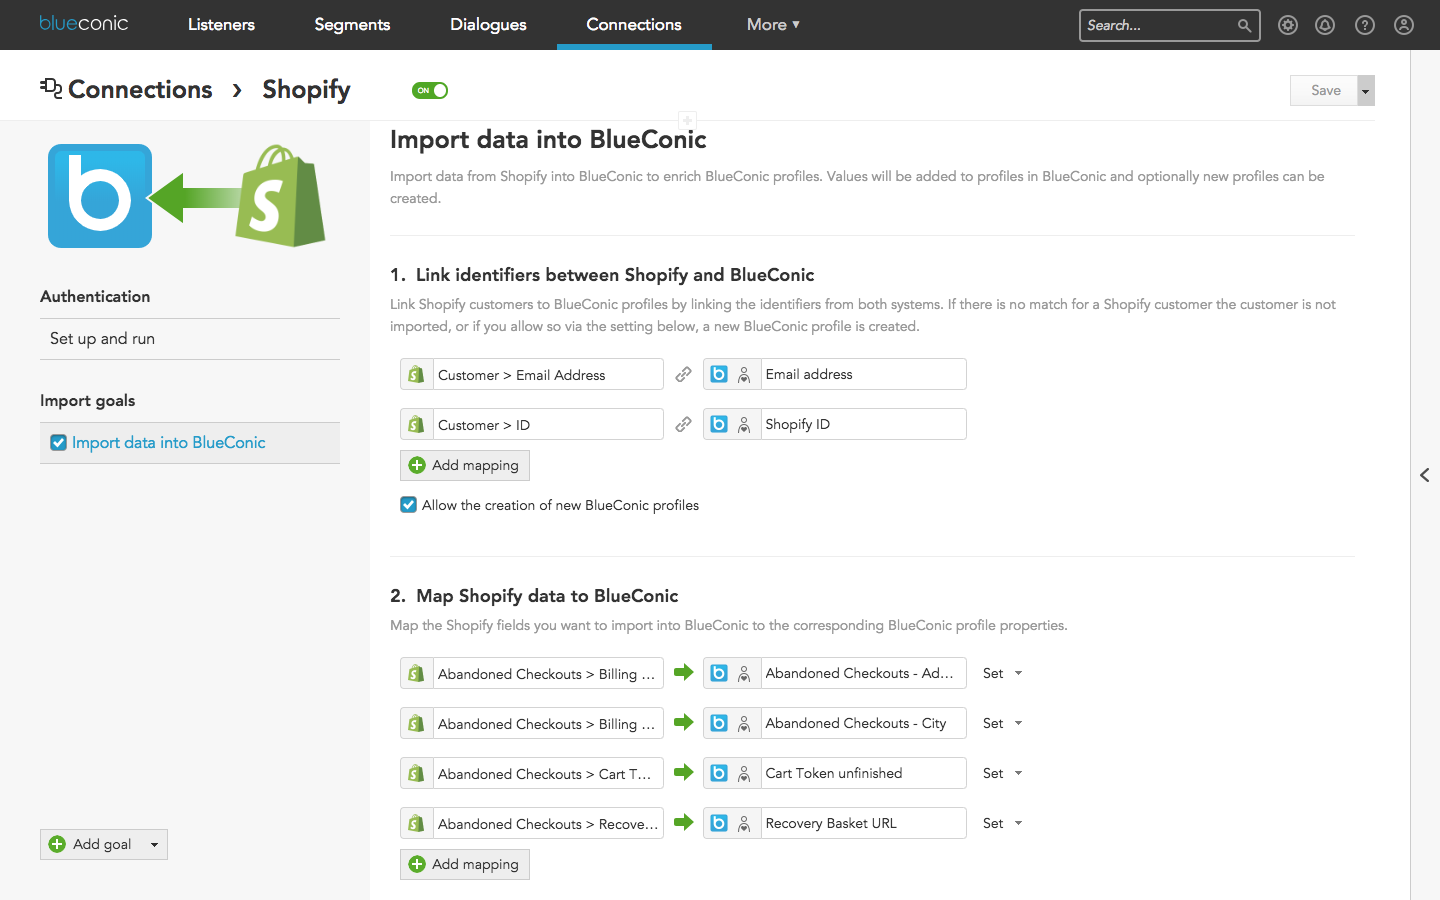 How to import Shopify data into BlueConic to sync order and shopping cart data with BlueConic profiles